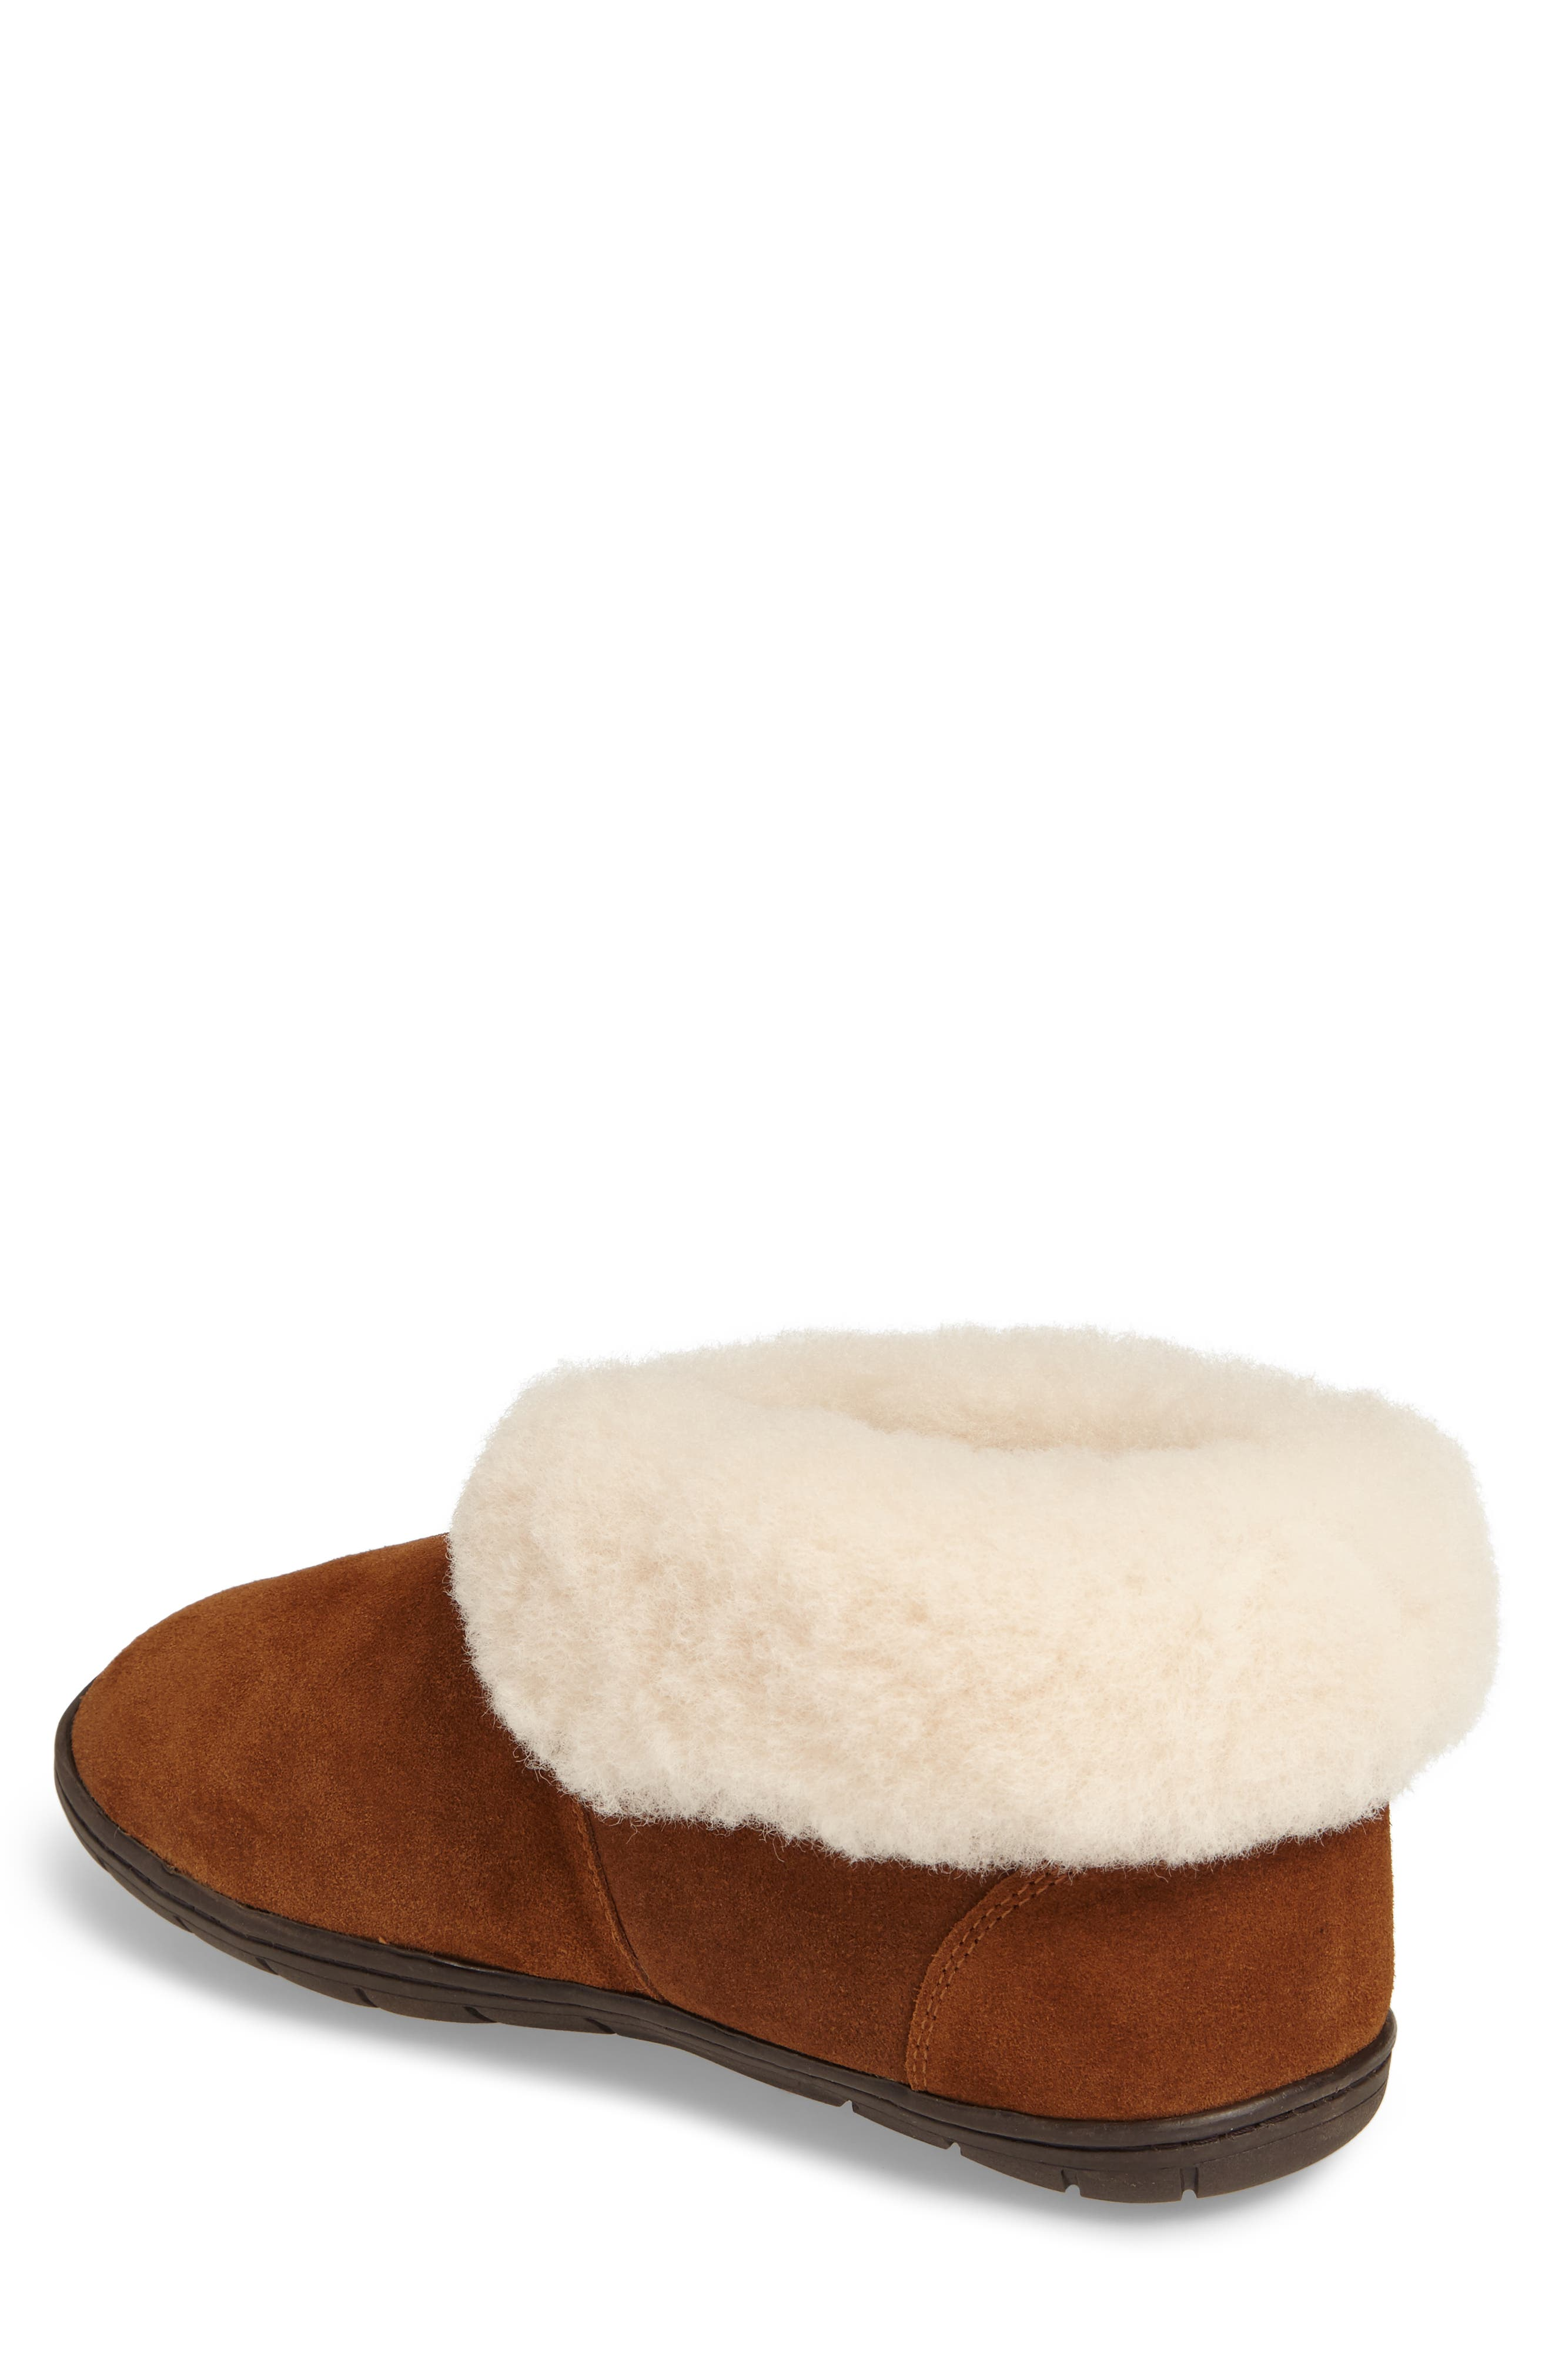 Alternate Image 2  - Staheekum Tundra Slipper Bootie with Genuine Shearling Lining (Men)